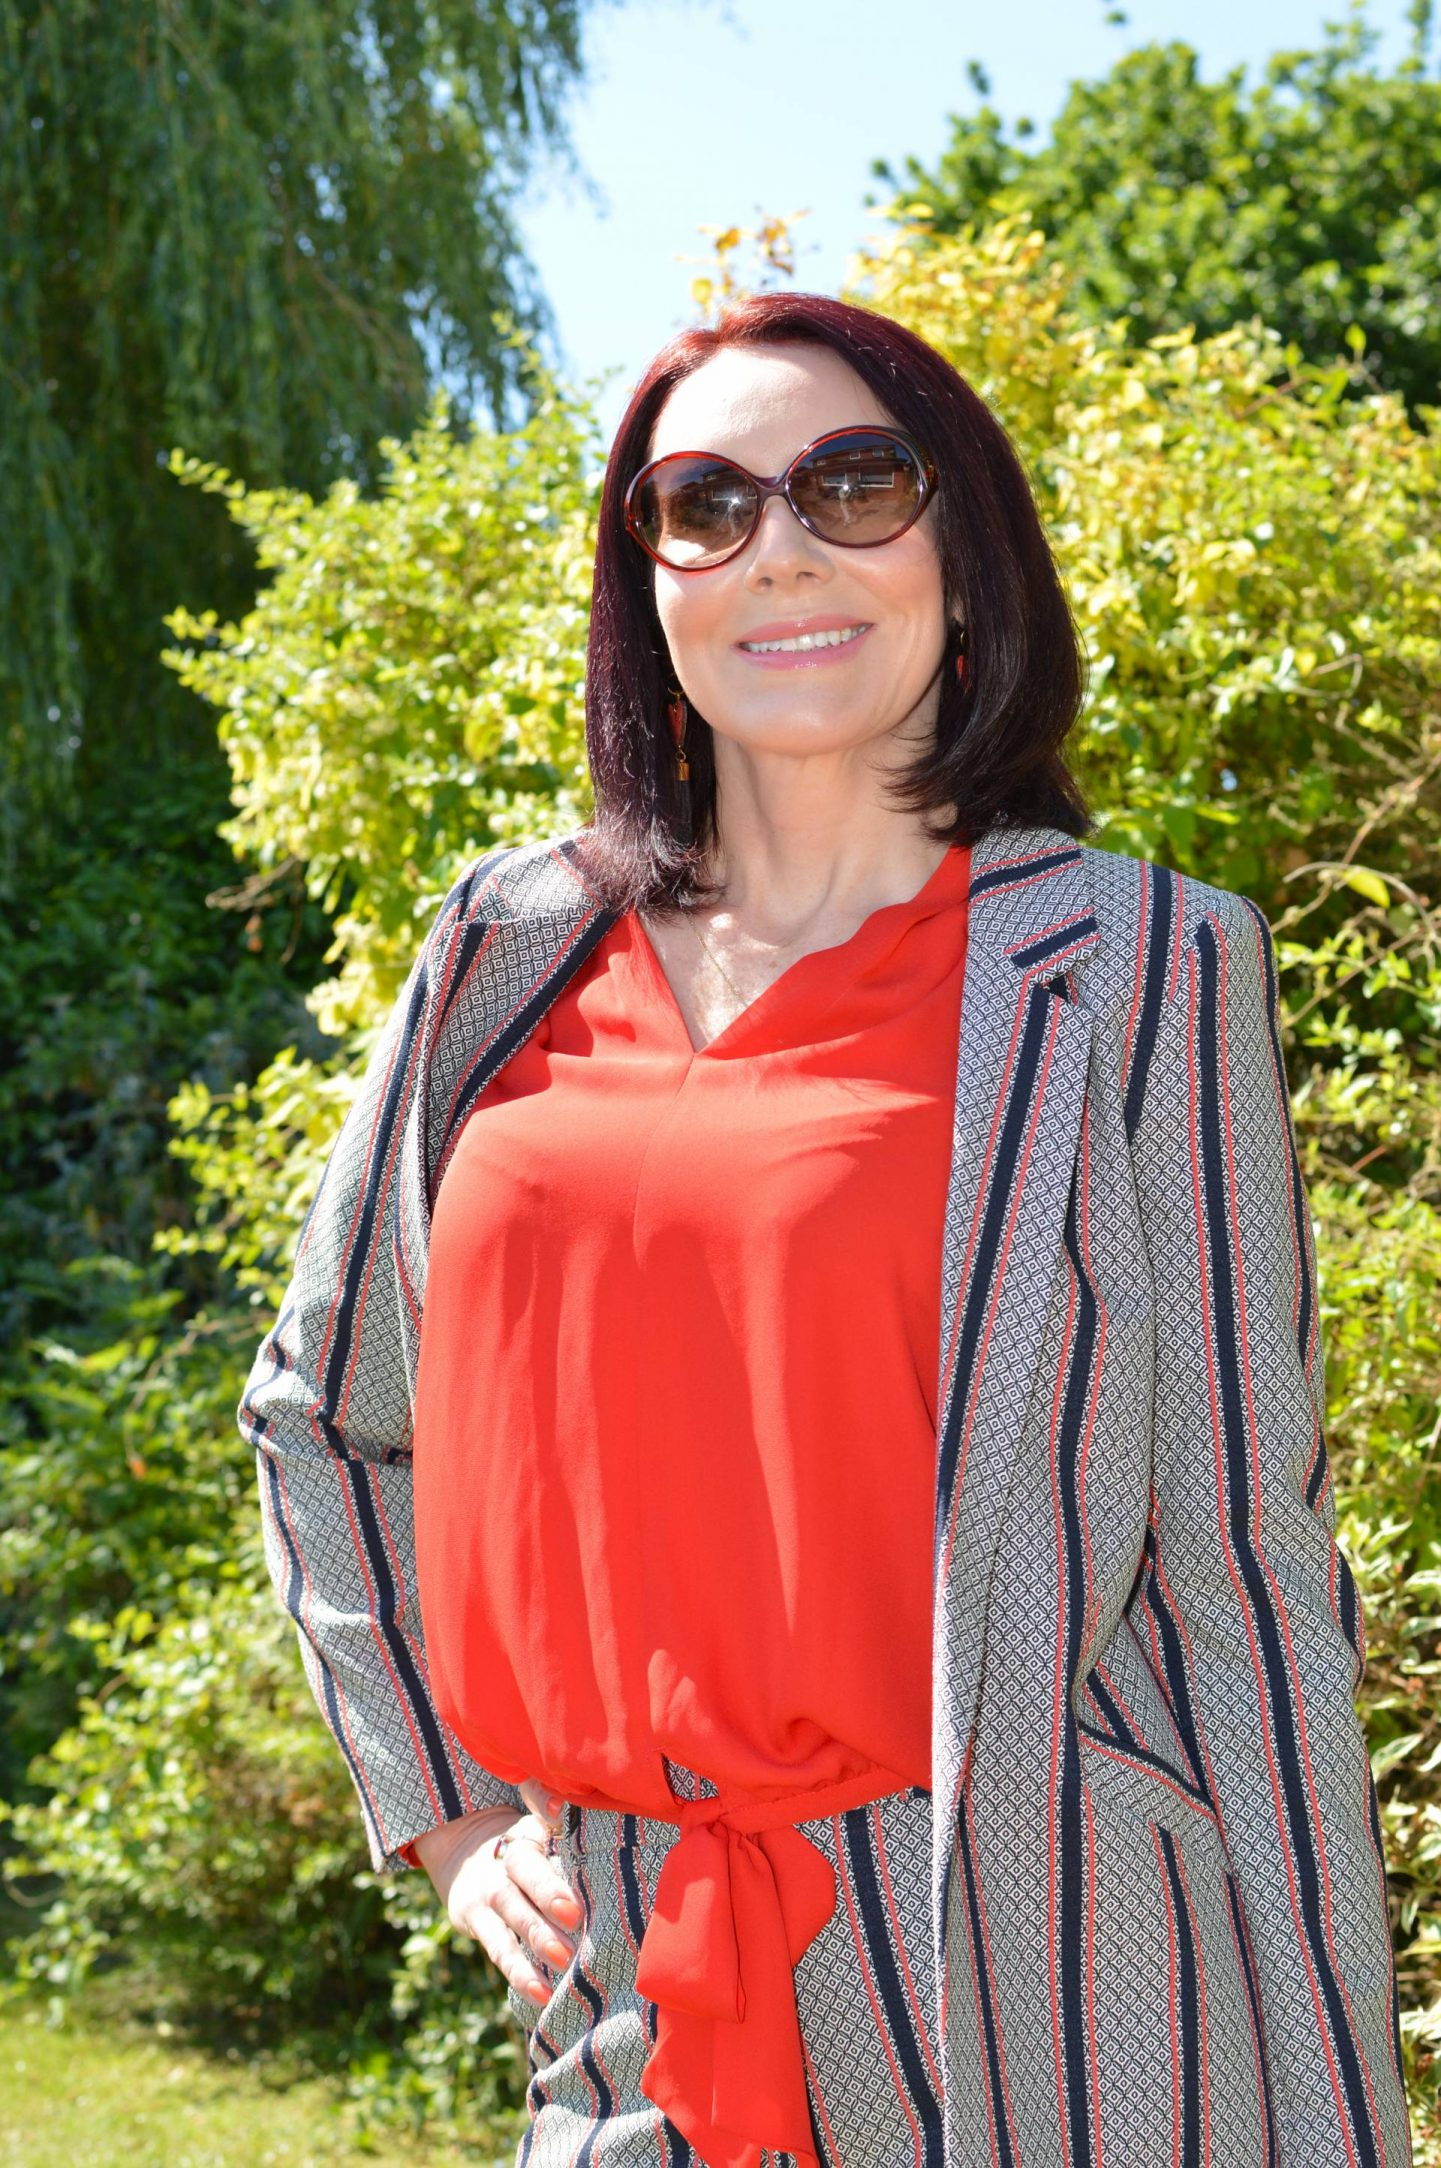 Striped Suit With Red Accents, River Island striped trouser suit, Scotch & Soda red blouse